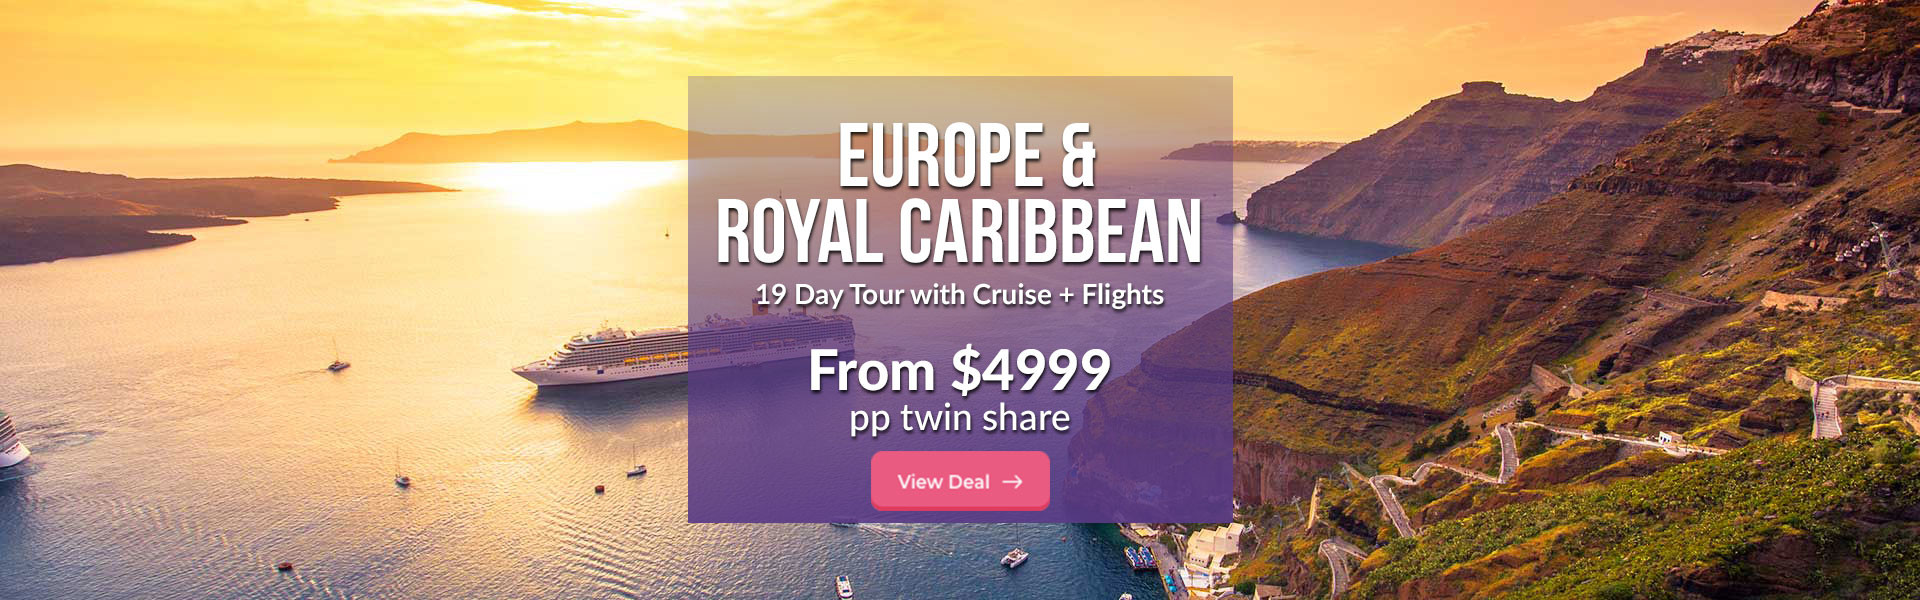 19 Day Europe Tour with Royal Caribbean Cruise